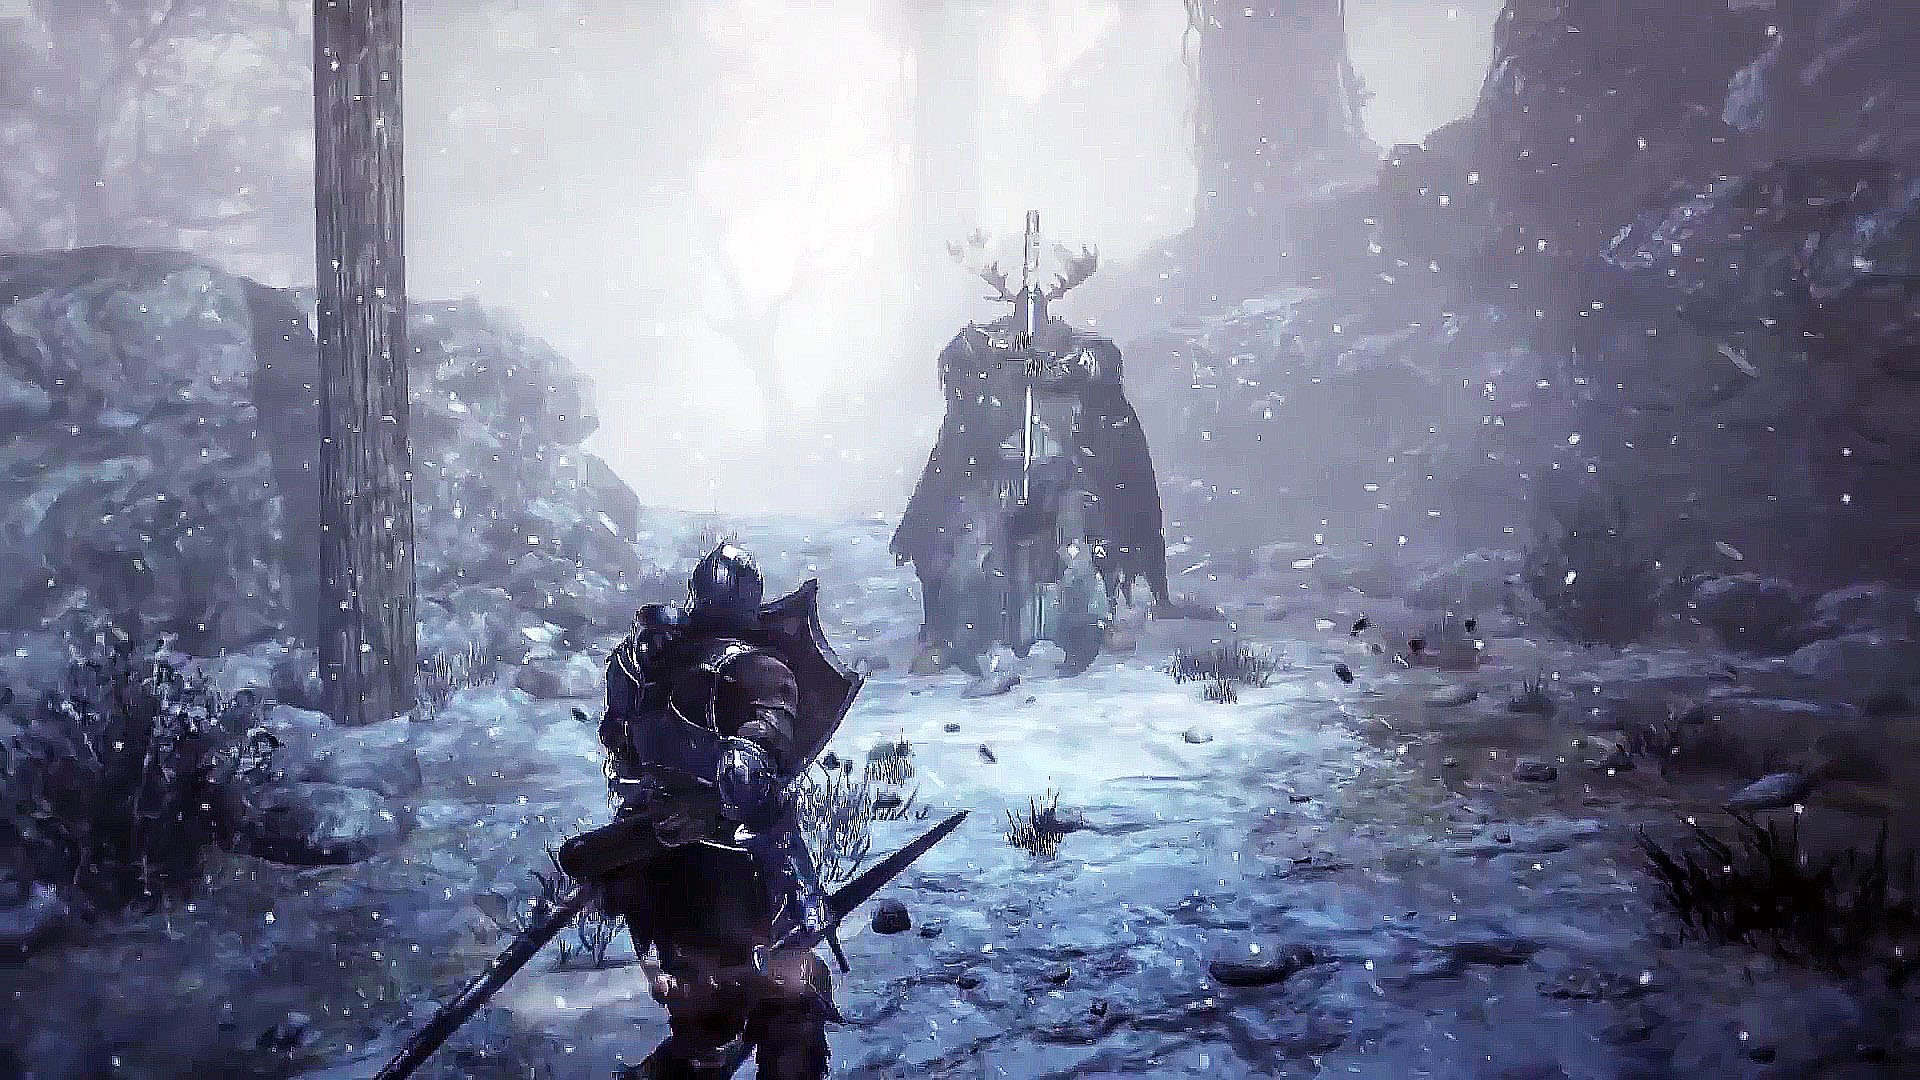 Ashes of Ariandel is scheduled to release on October 25.